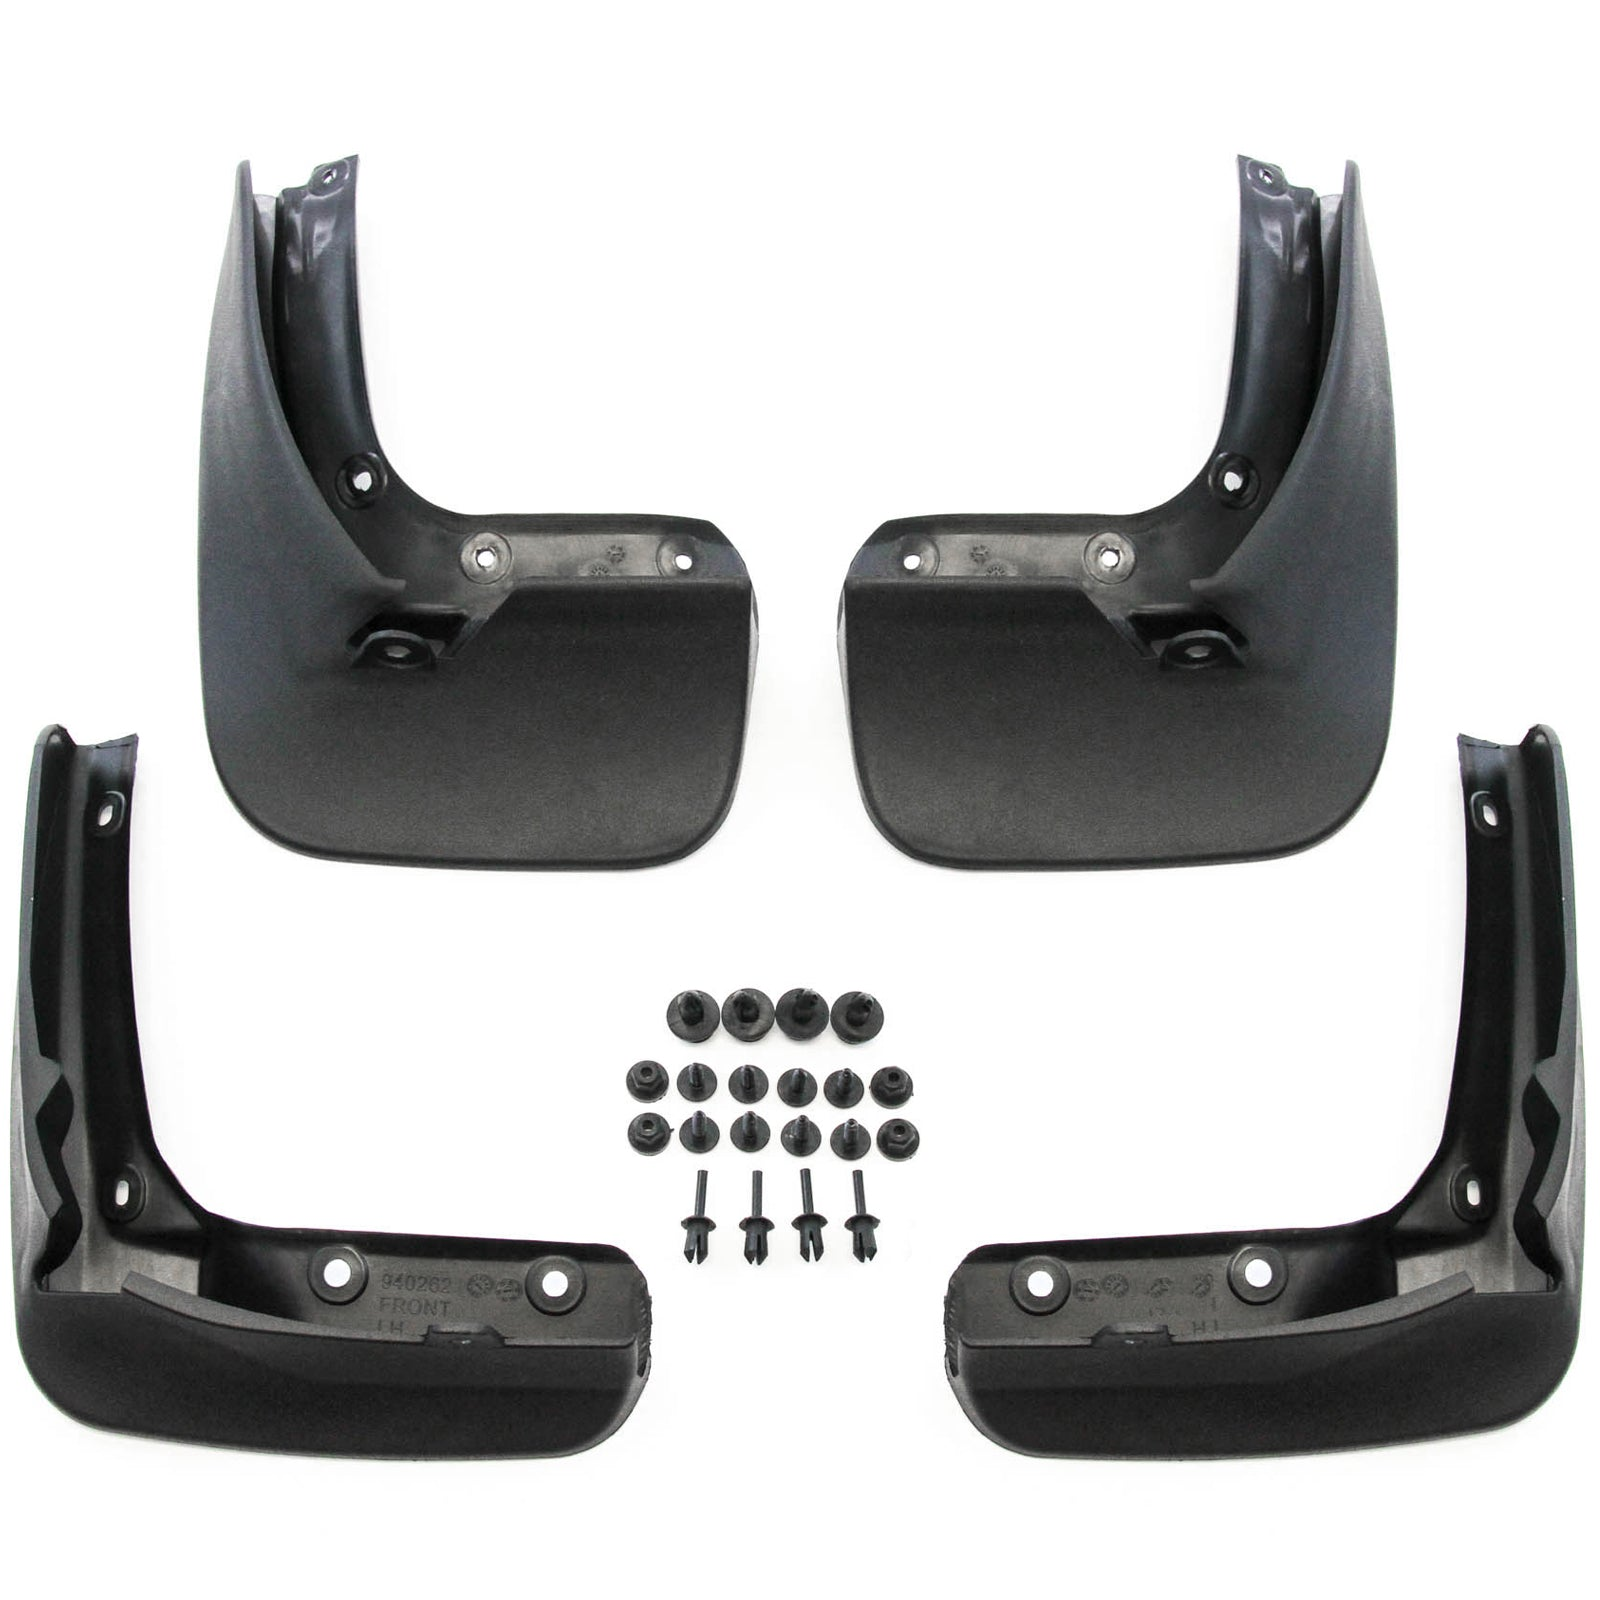 Premium Heavy Duty Molded 2015-2018 Compatible with Volkswagen GTI Mud Flaps Mud Guards Splash Front Rear Molded 4pc Set